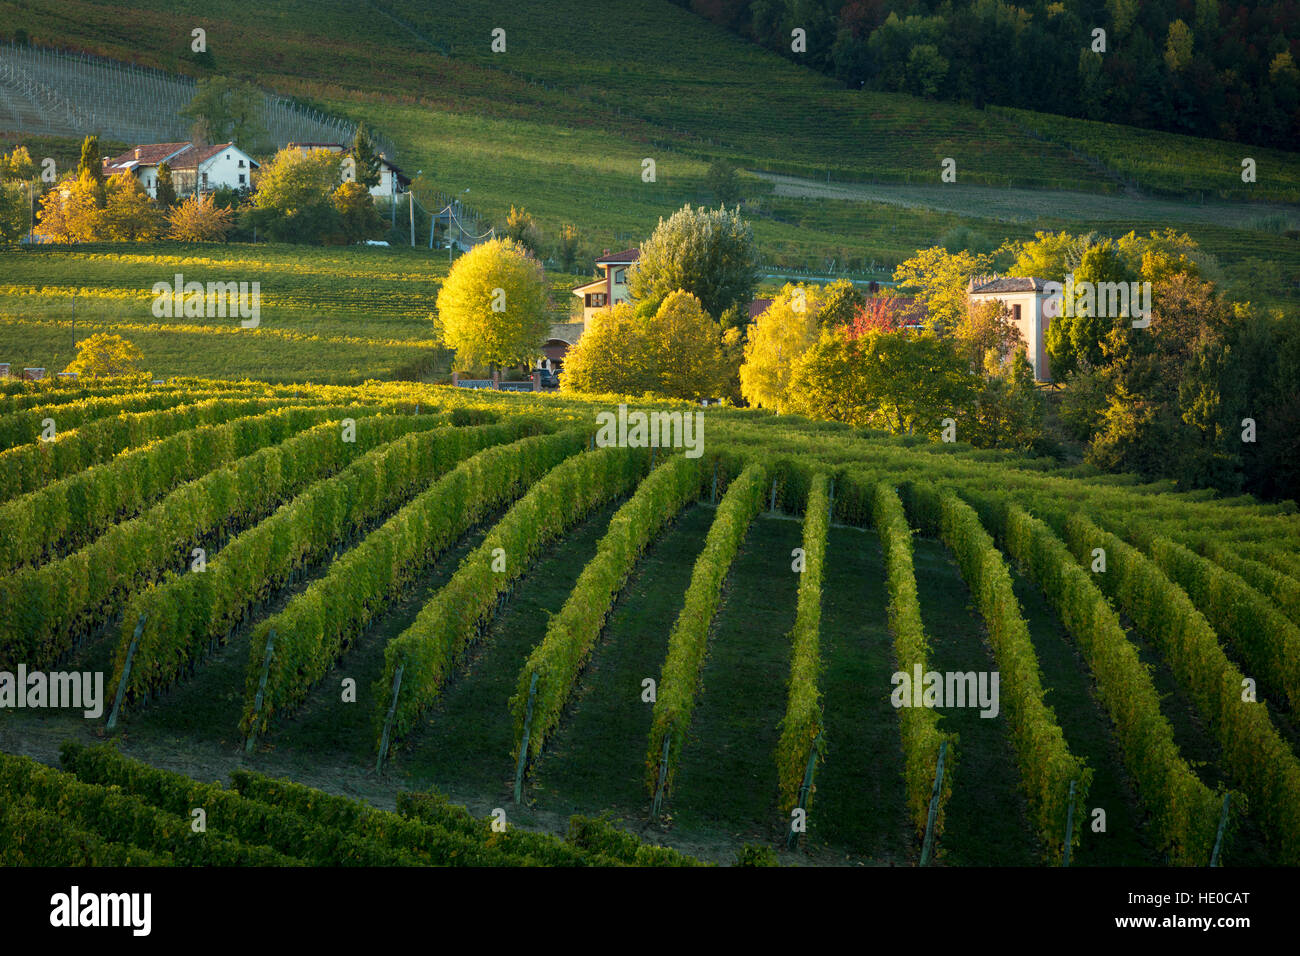 Autumn evening sunlight on the vineyards near Barolo, Piemonte, Italy - Stock Image